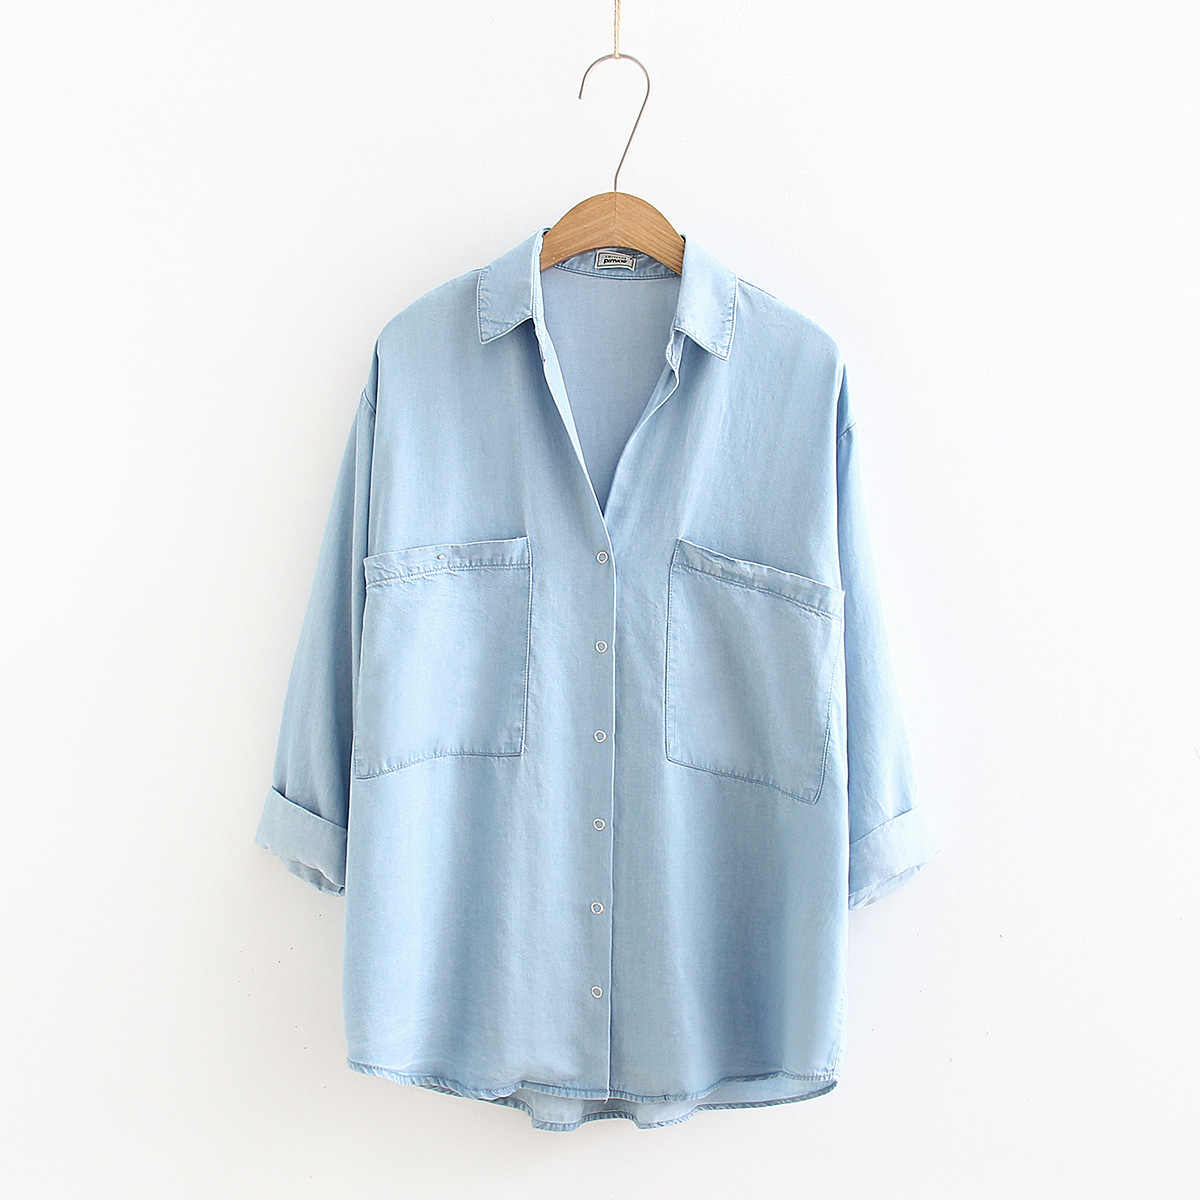 Womens Denim Shirt Chic Jeans Blusas Mujer Tencel soft Long Sleeve Shirts Oversized Fashion Blouses Blusa Feminina female tops